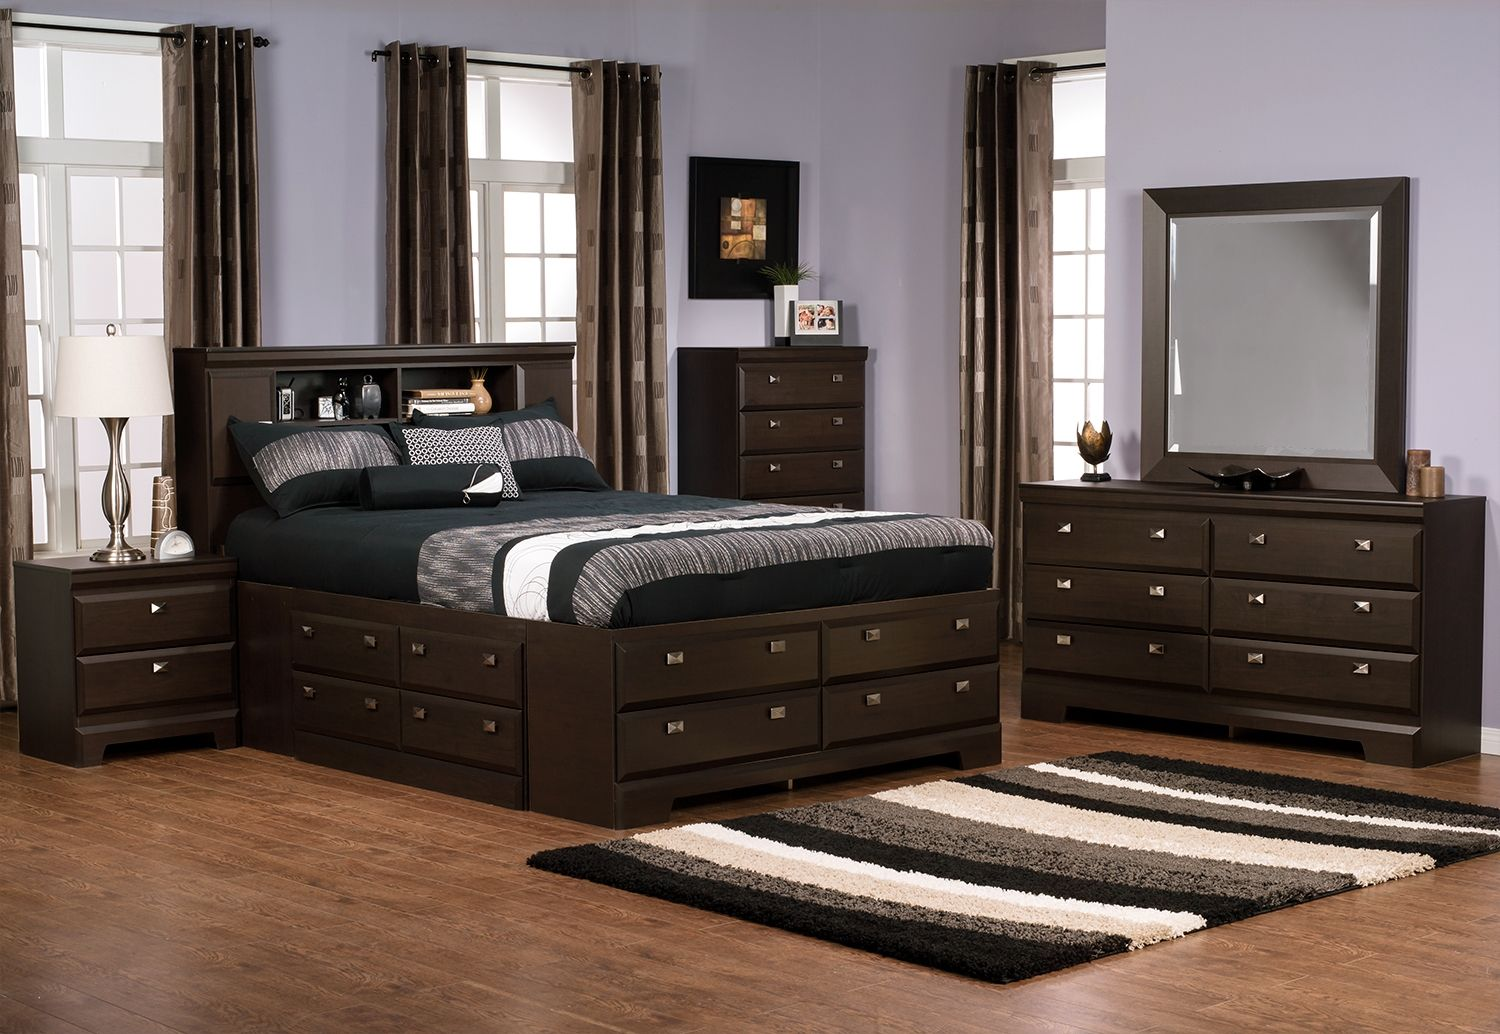 Bedroom Furniture Yorkdale 8Piece Queen Bookcase